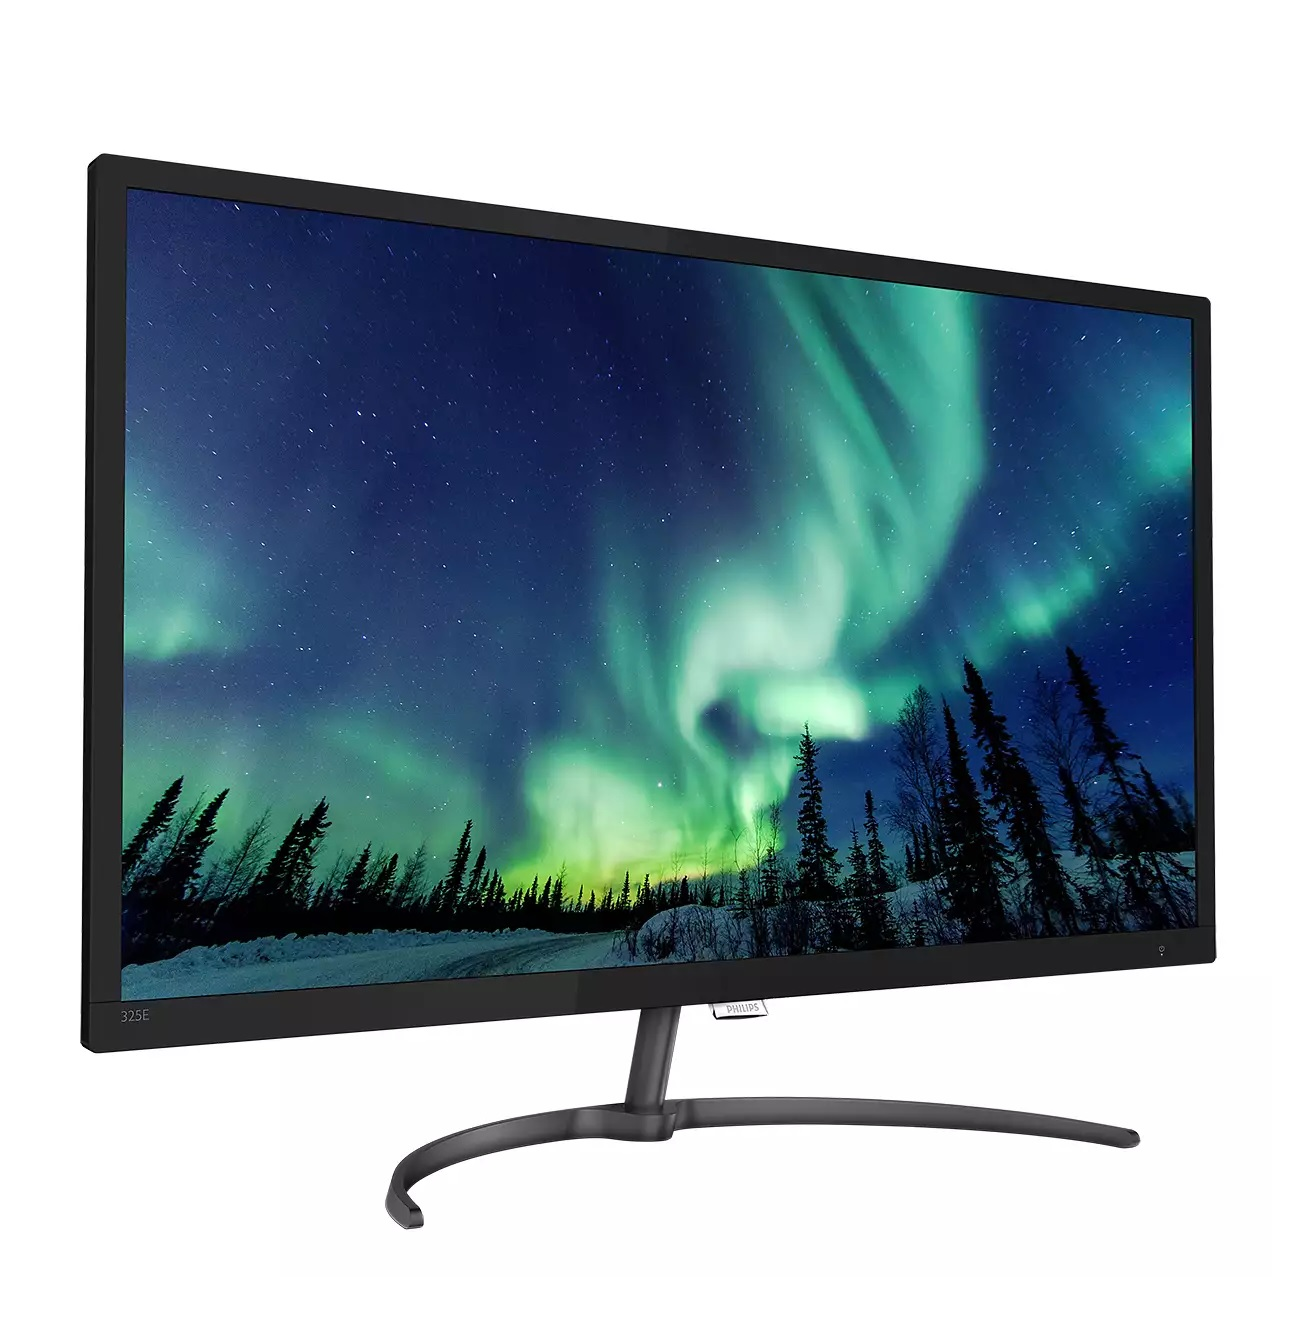 Philips 325E8 31.5inch WLED Monitor